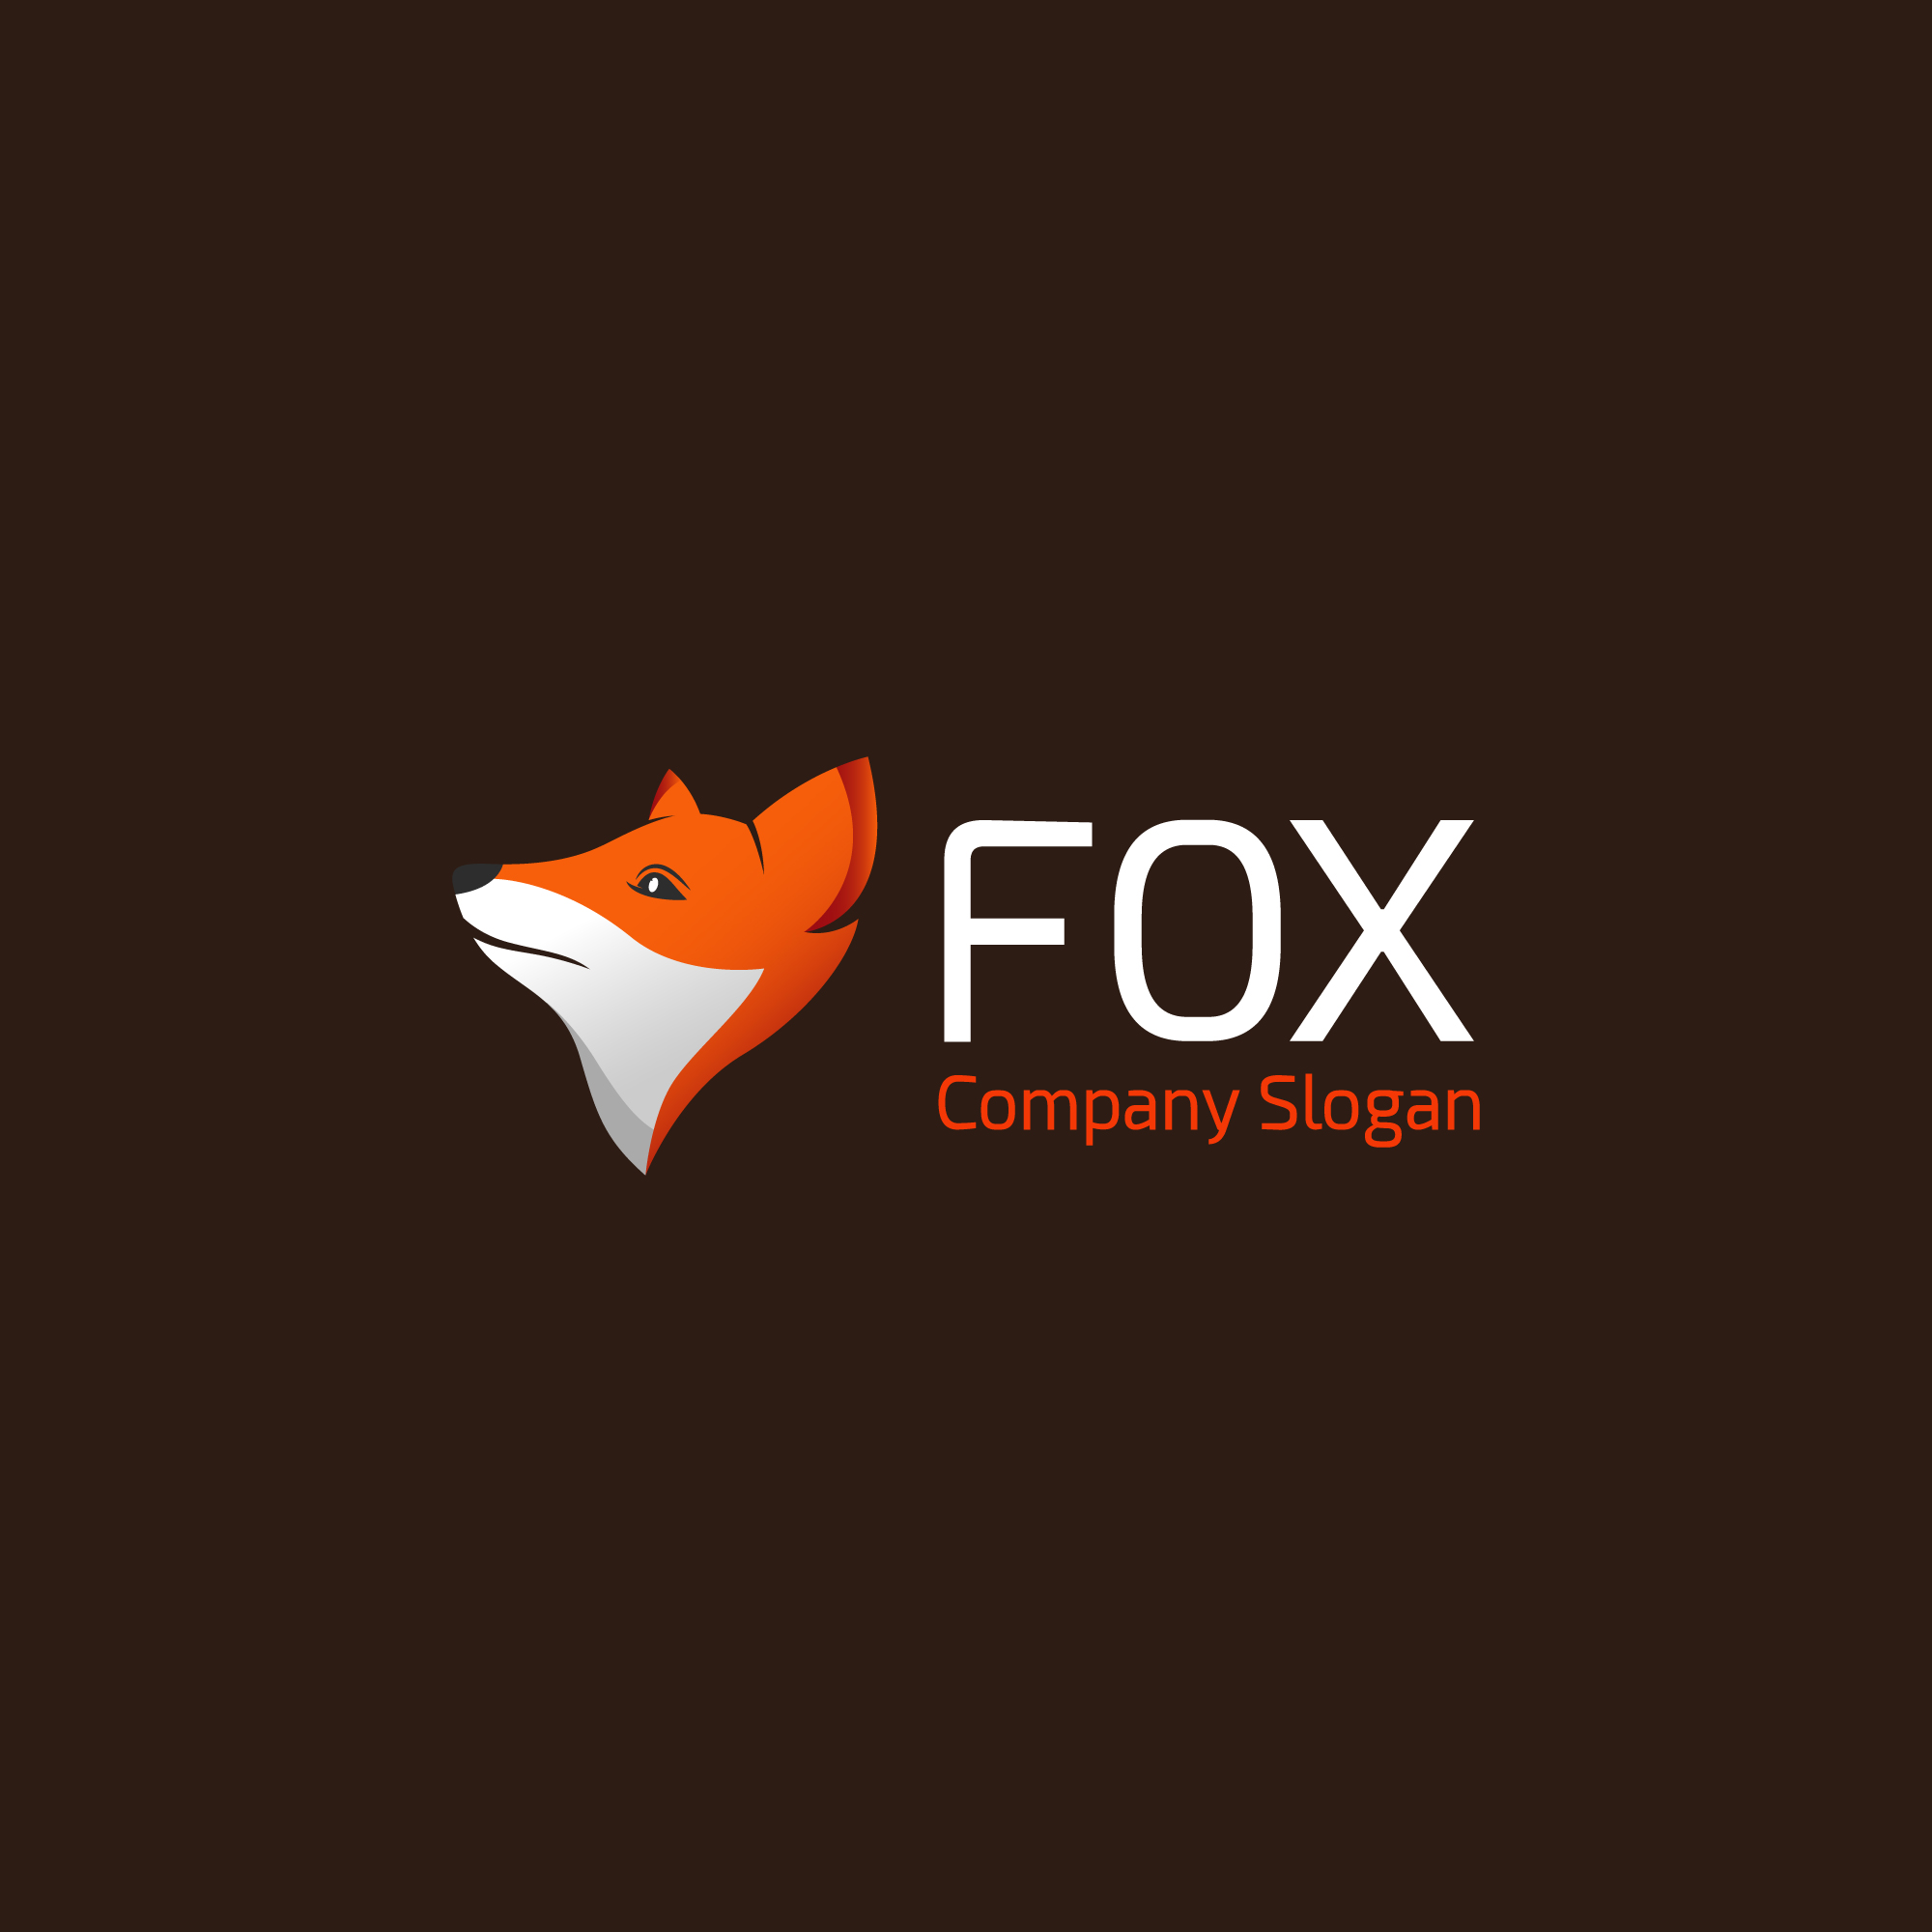 Fox logo on brown background